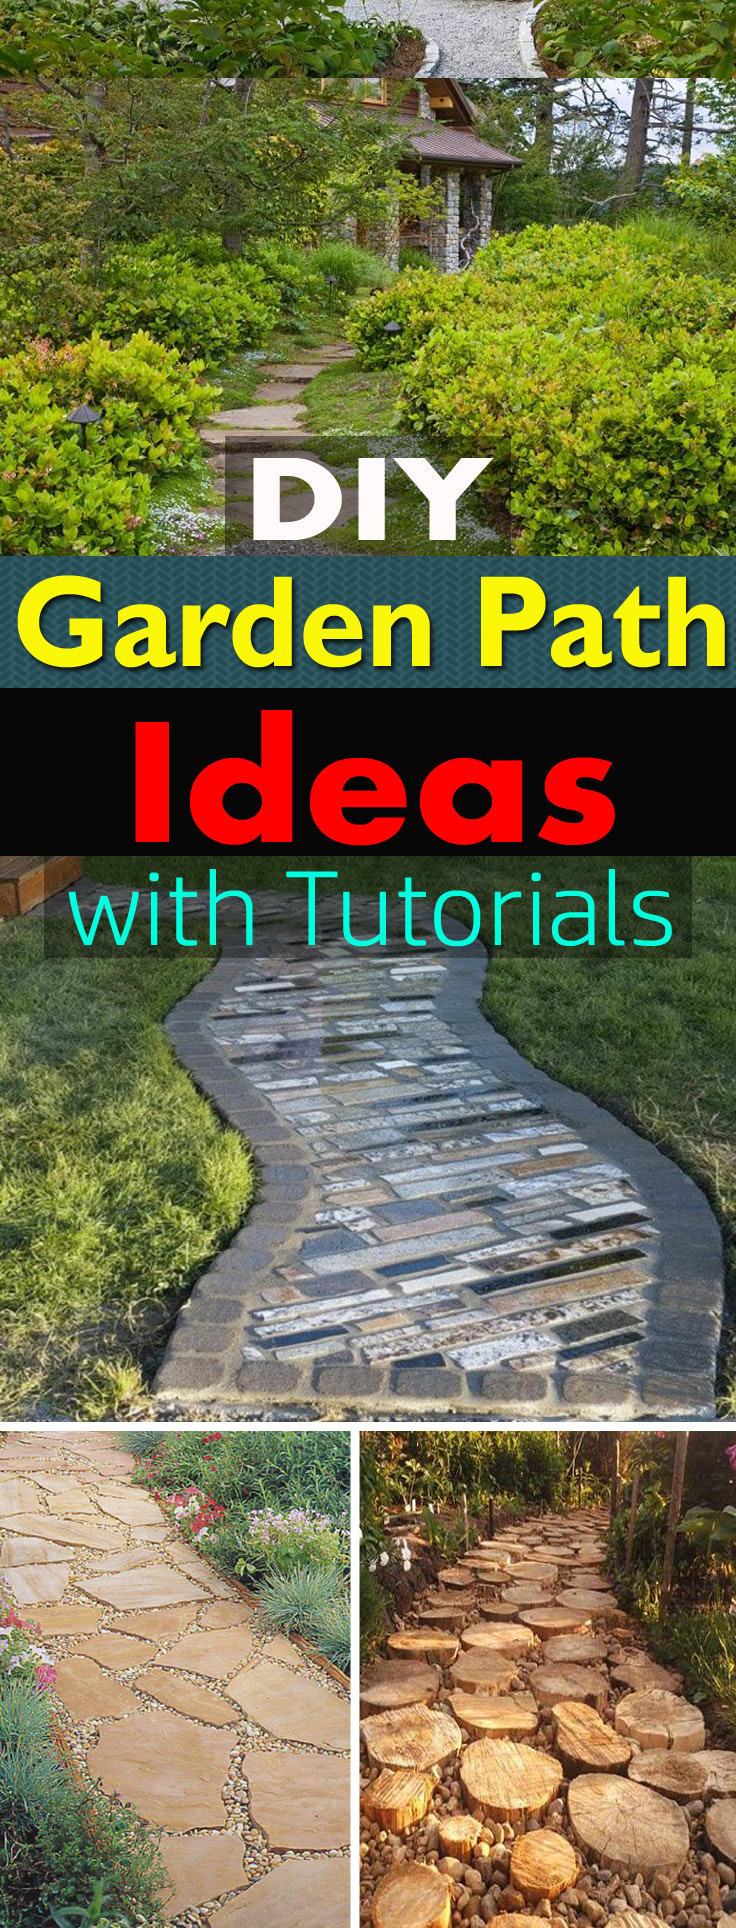 19 Diy Garden Path Ideas With Tutorials Balcony Garden Web with regard to 15 Genius Designs of How to Craft Backyard Sidewalk Ideas